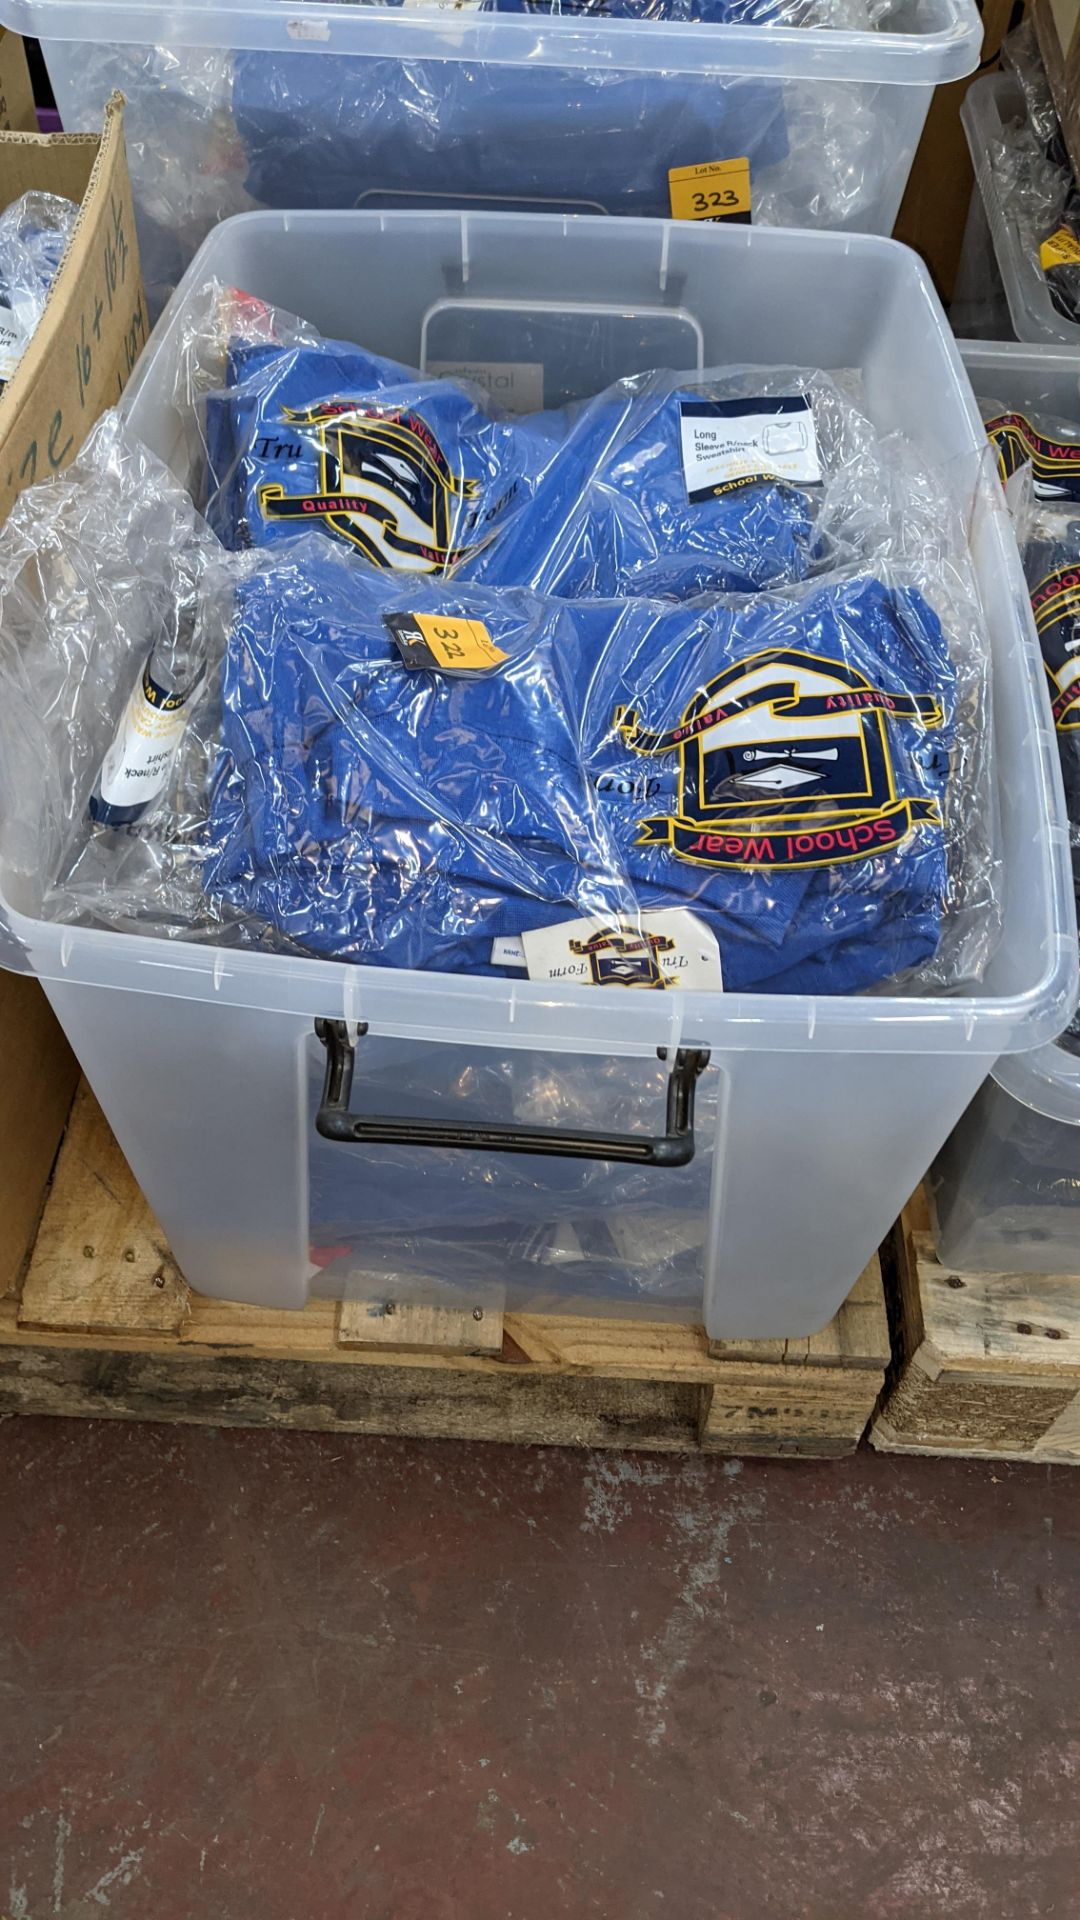 Approx 27 off blue children's sweatshirts & similar - the contents of 1 crate. NB crate excluded